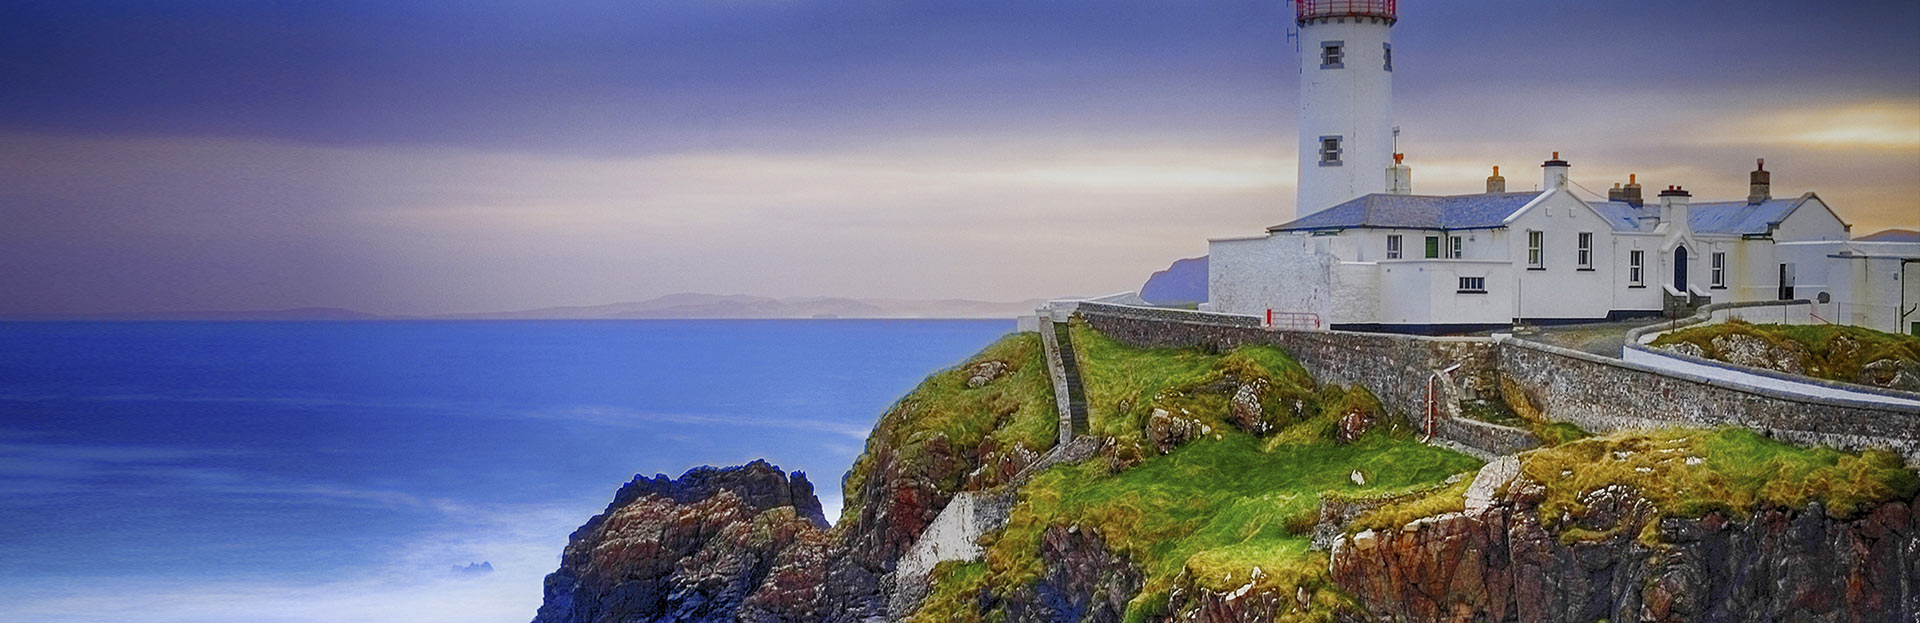 Ireland Fanad Lighthouse